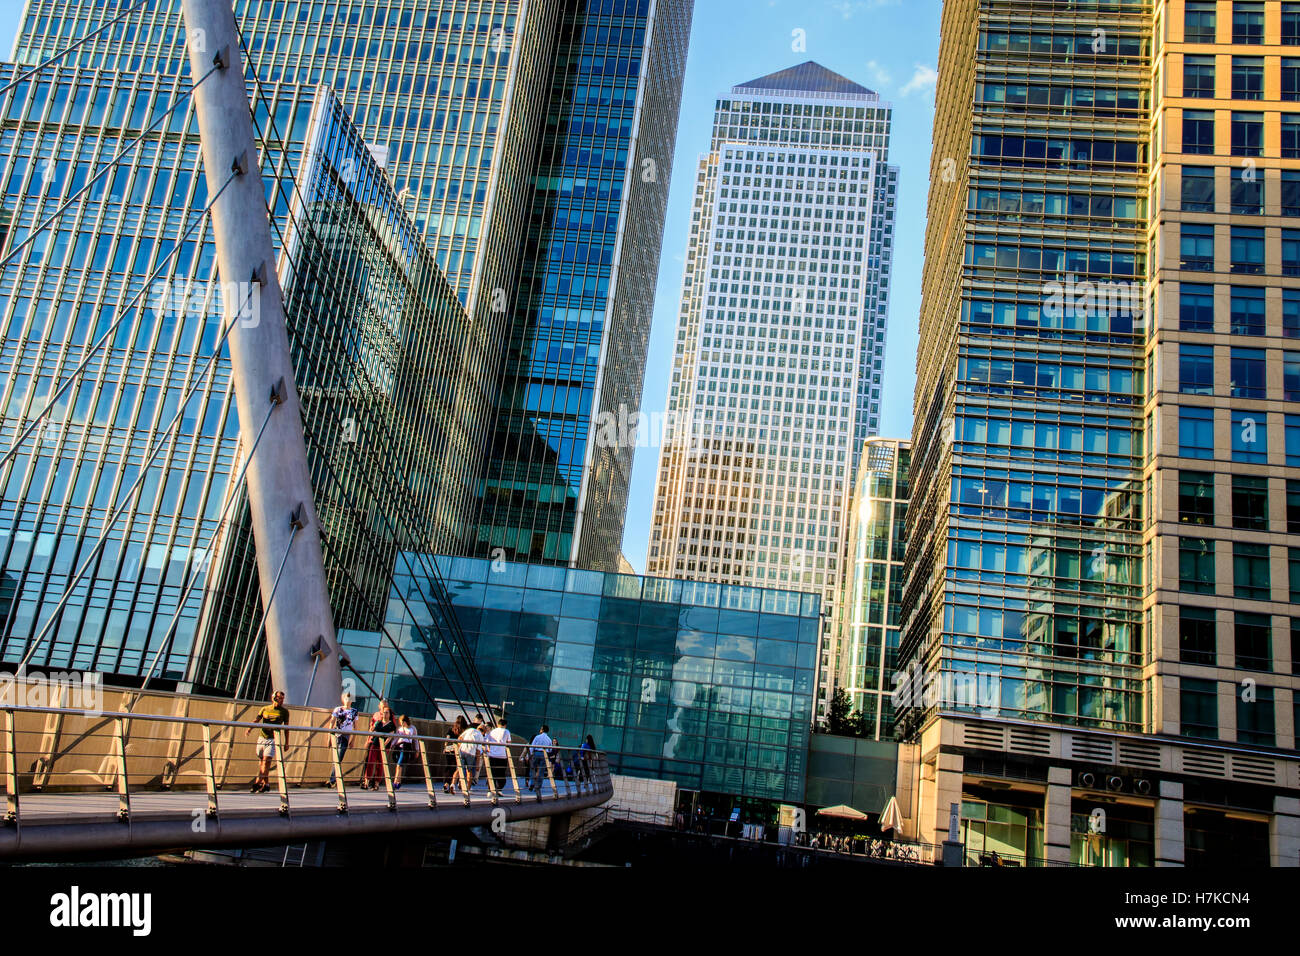 London, UK - August 29, 2016 - People walking on the South Quay footbridge in Canary Wharf with One Canada Square - Stock Image